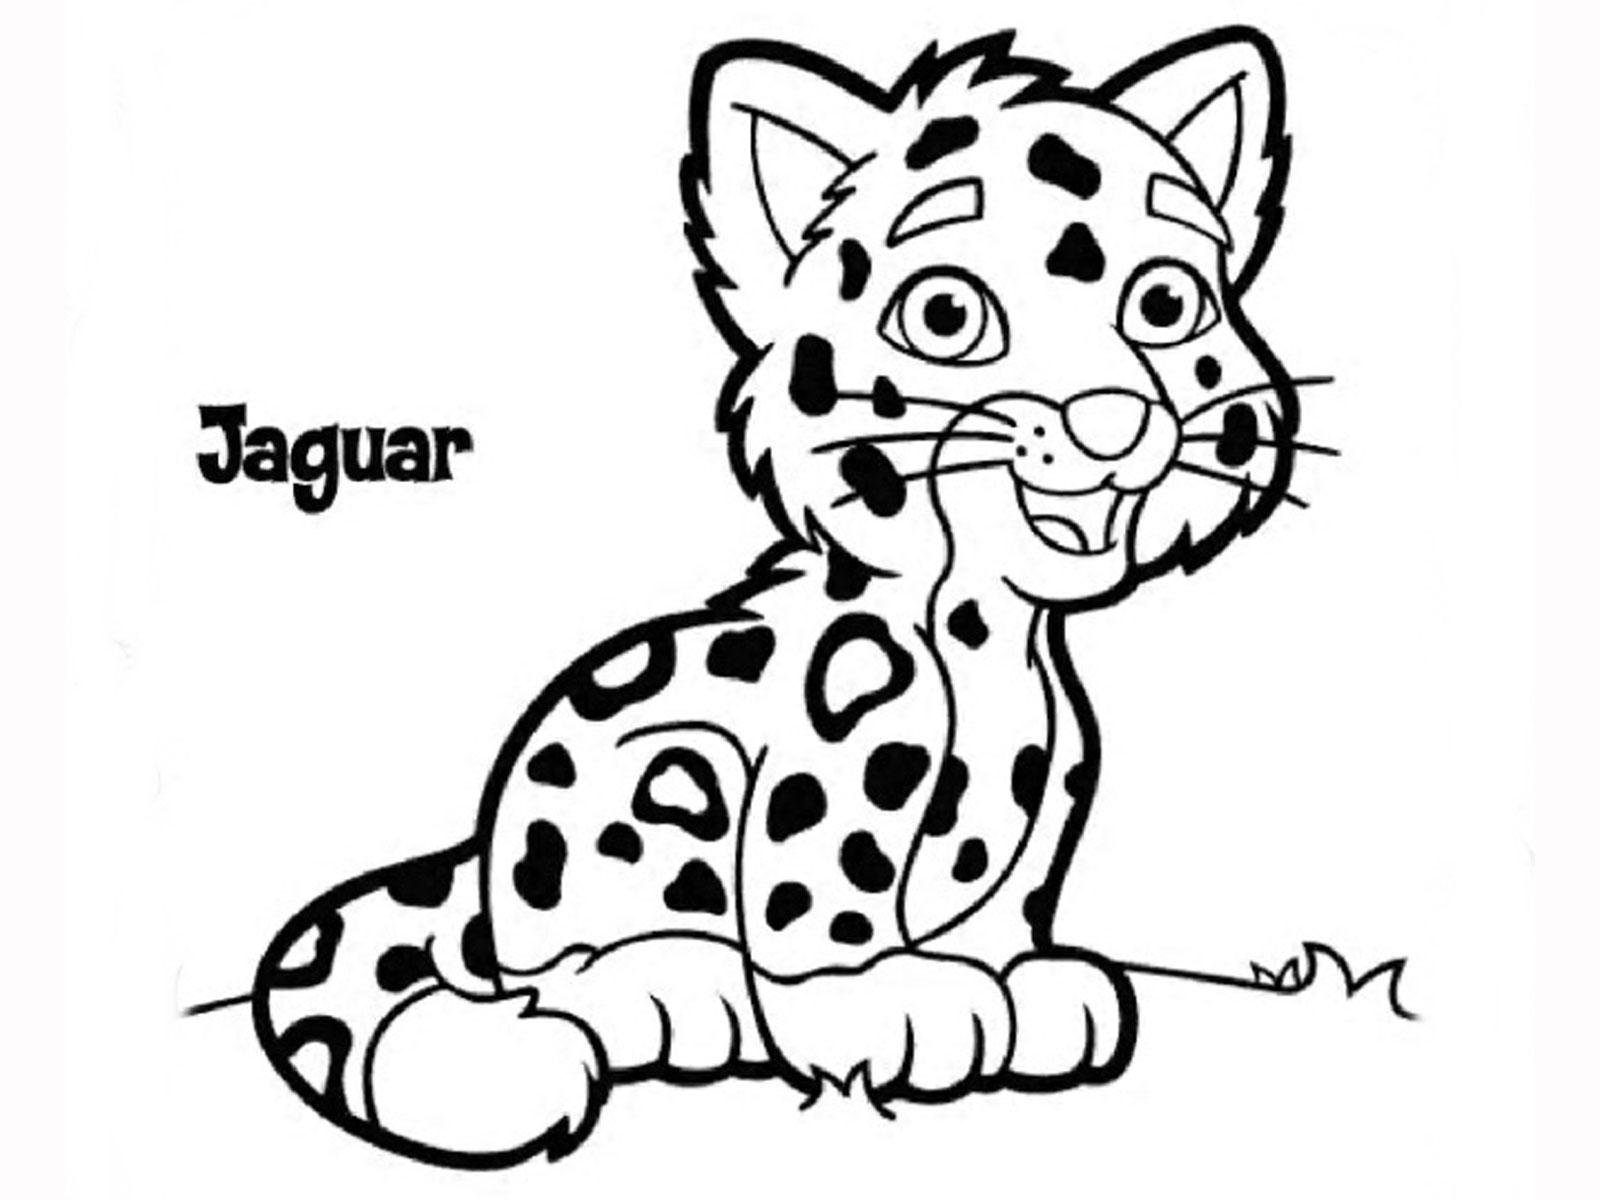 jaguar pictures to color jaguar coloring pages to download and print for free to color jaguar pictures